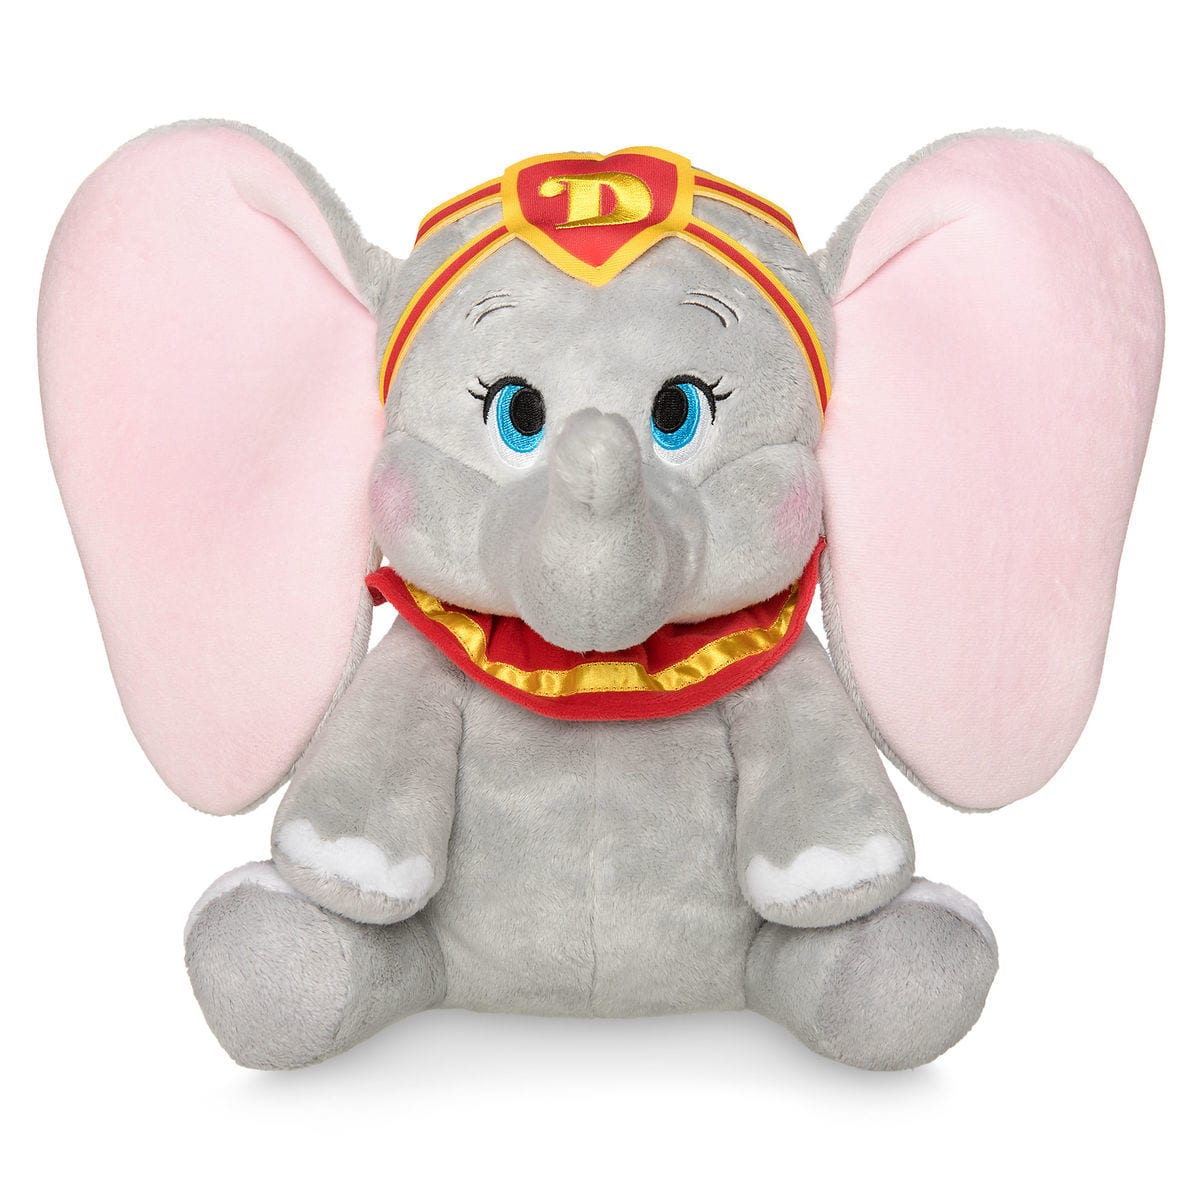 New Dumbo Plush, Dumbo Easter Eggs